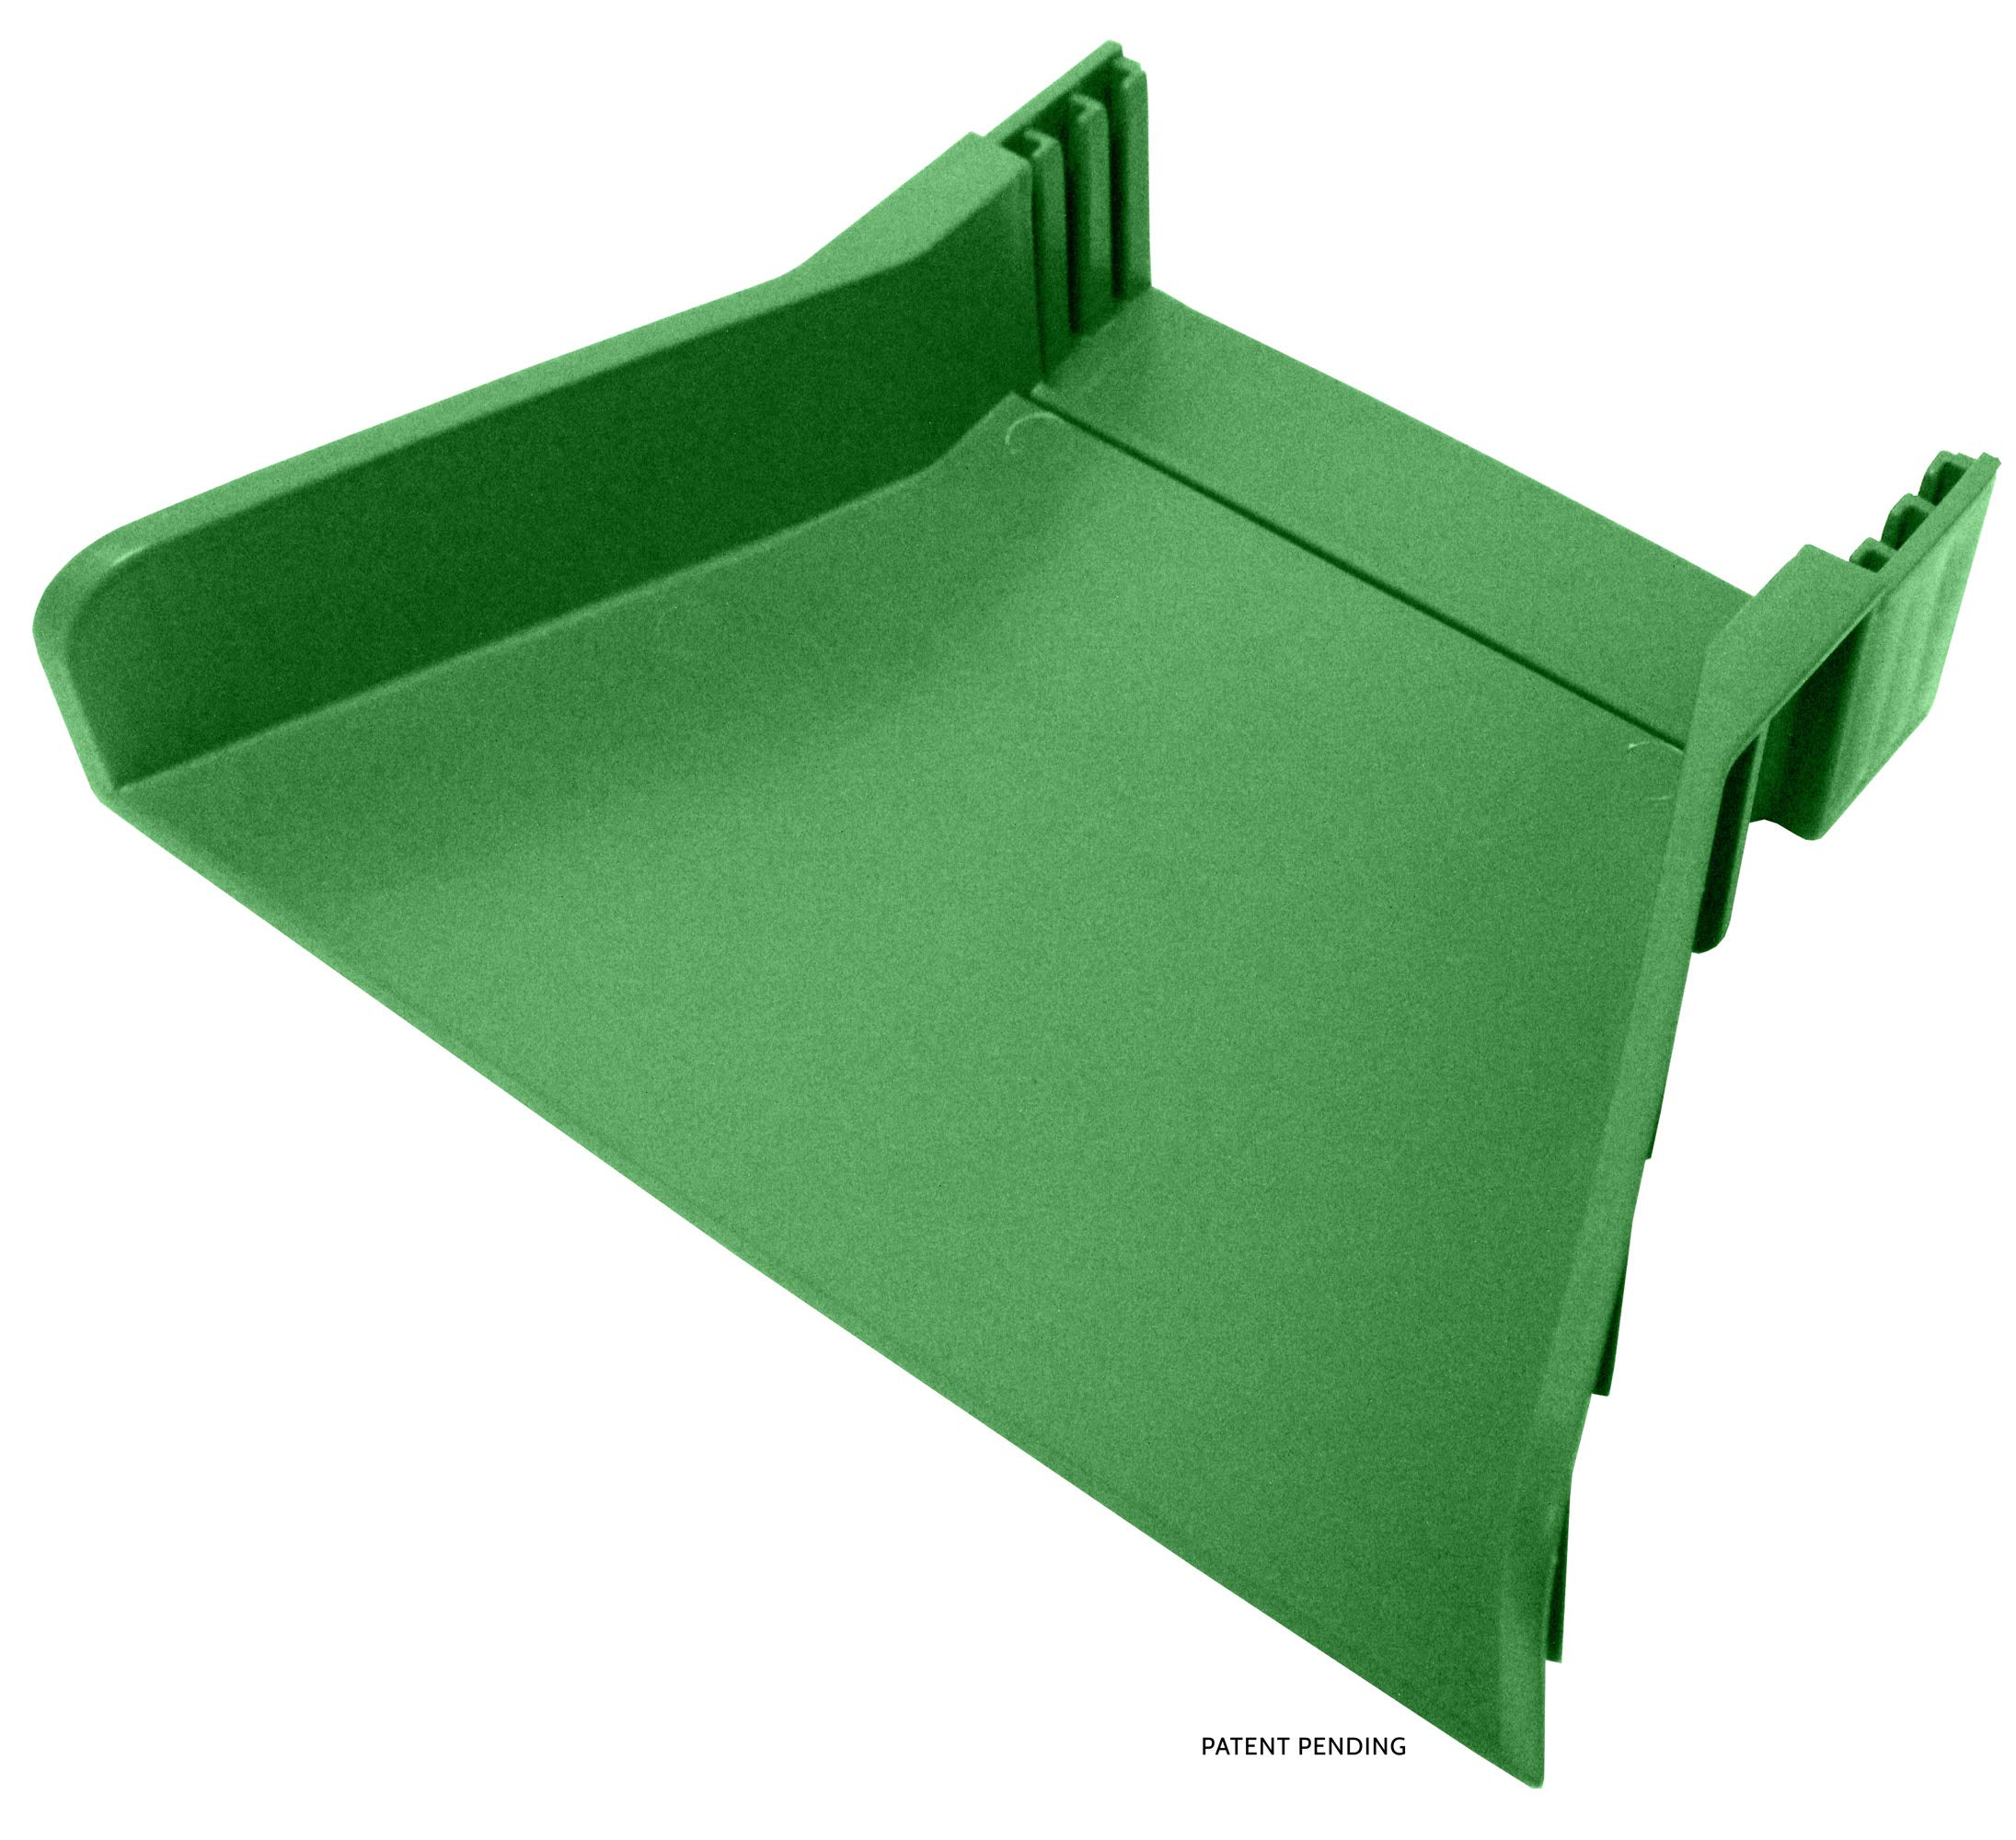 Sluice Fox Flare Only-Green for Portable Modular Sluice Box Gold Panning Dredge by Sluice Fox (Image #1)